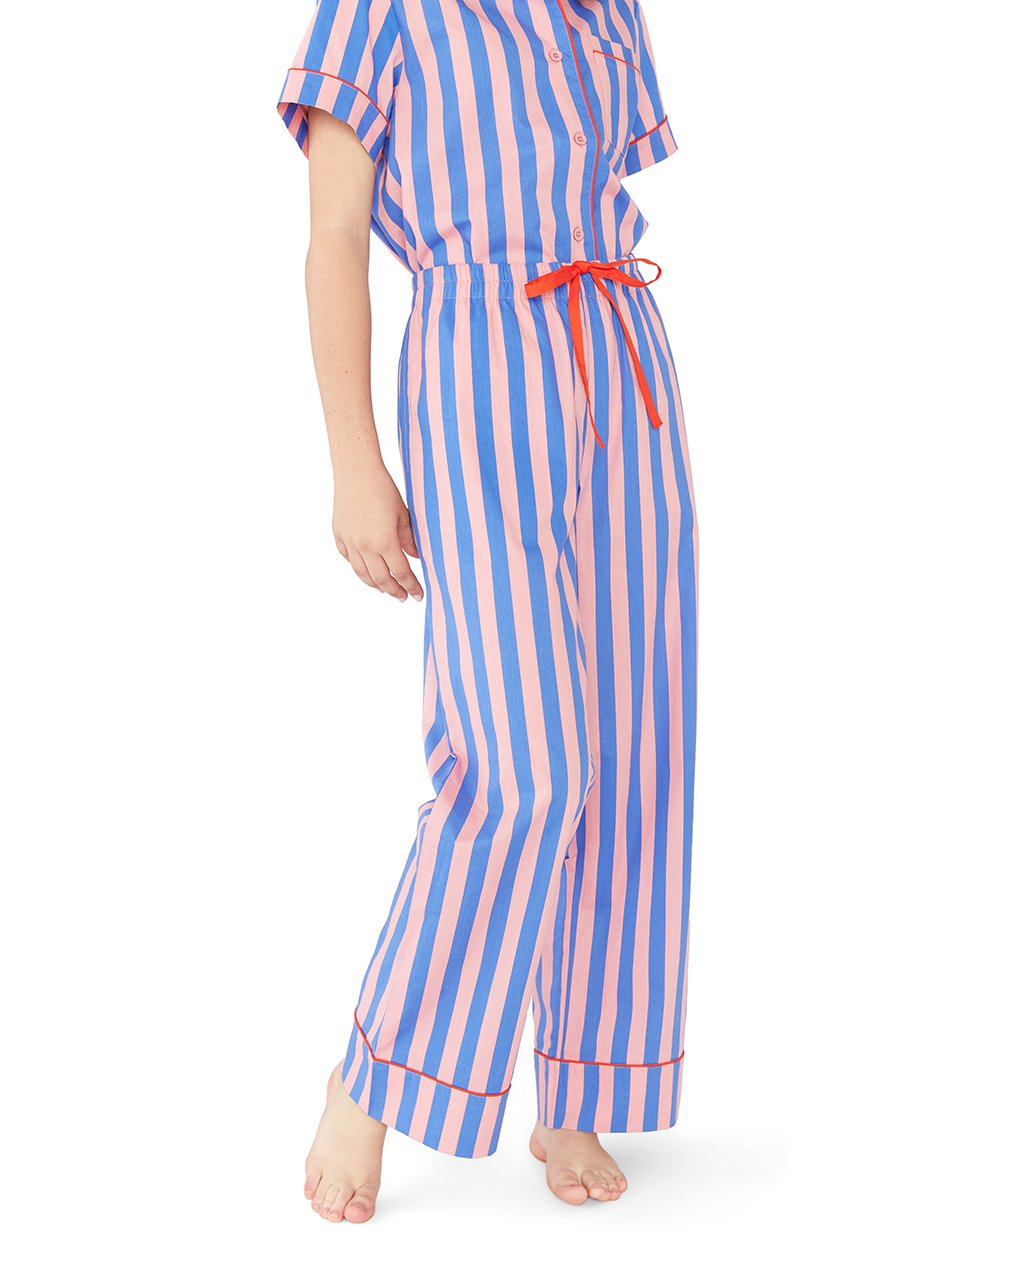 These sleep pants come in indigo and pink vertical stripes.